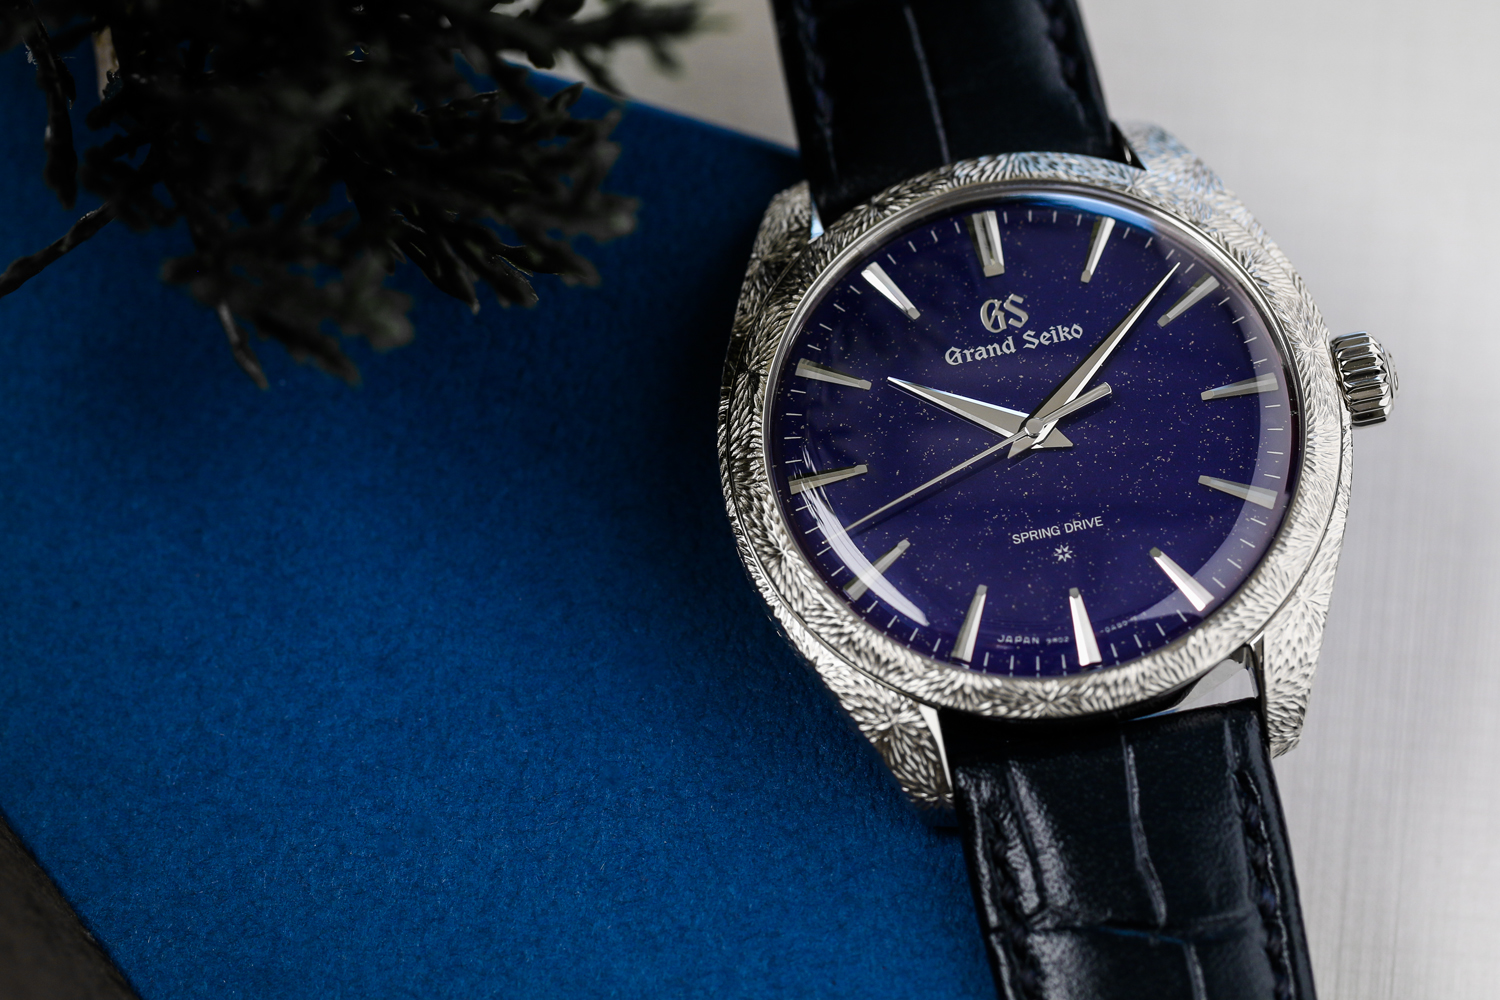 The Grand Seiko SBGZ007 is a masterpiece that evokes the starry skies of Japan